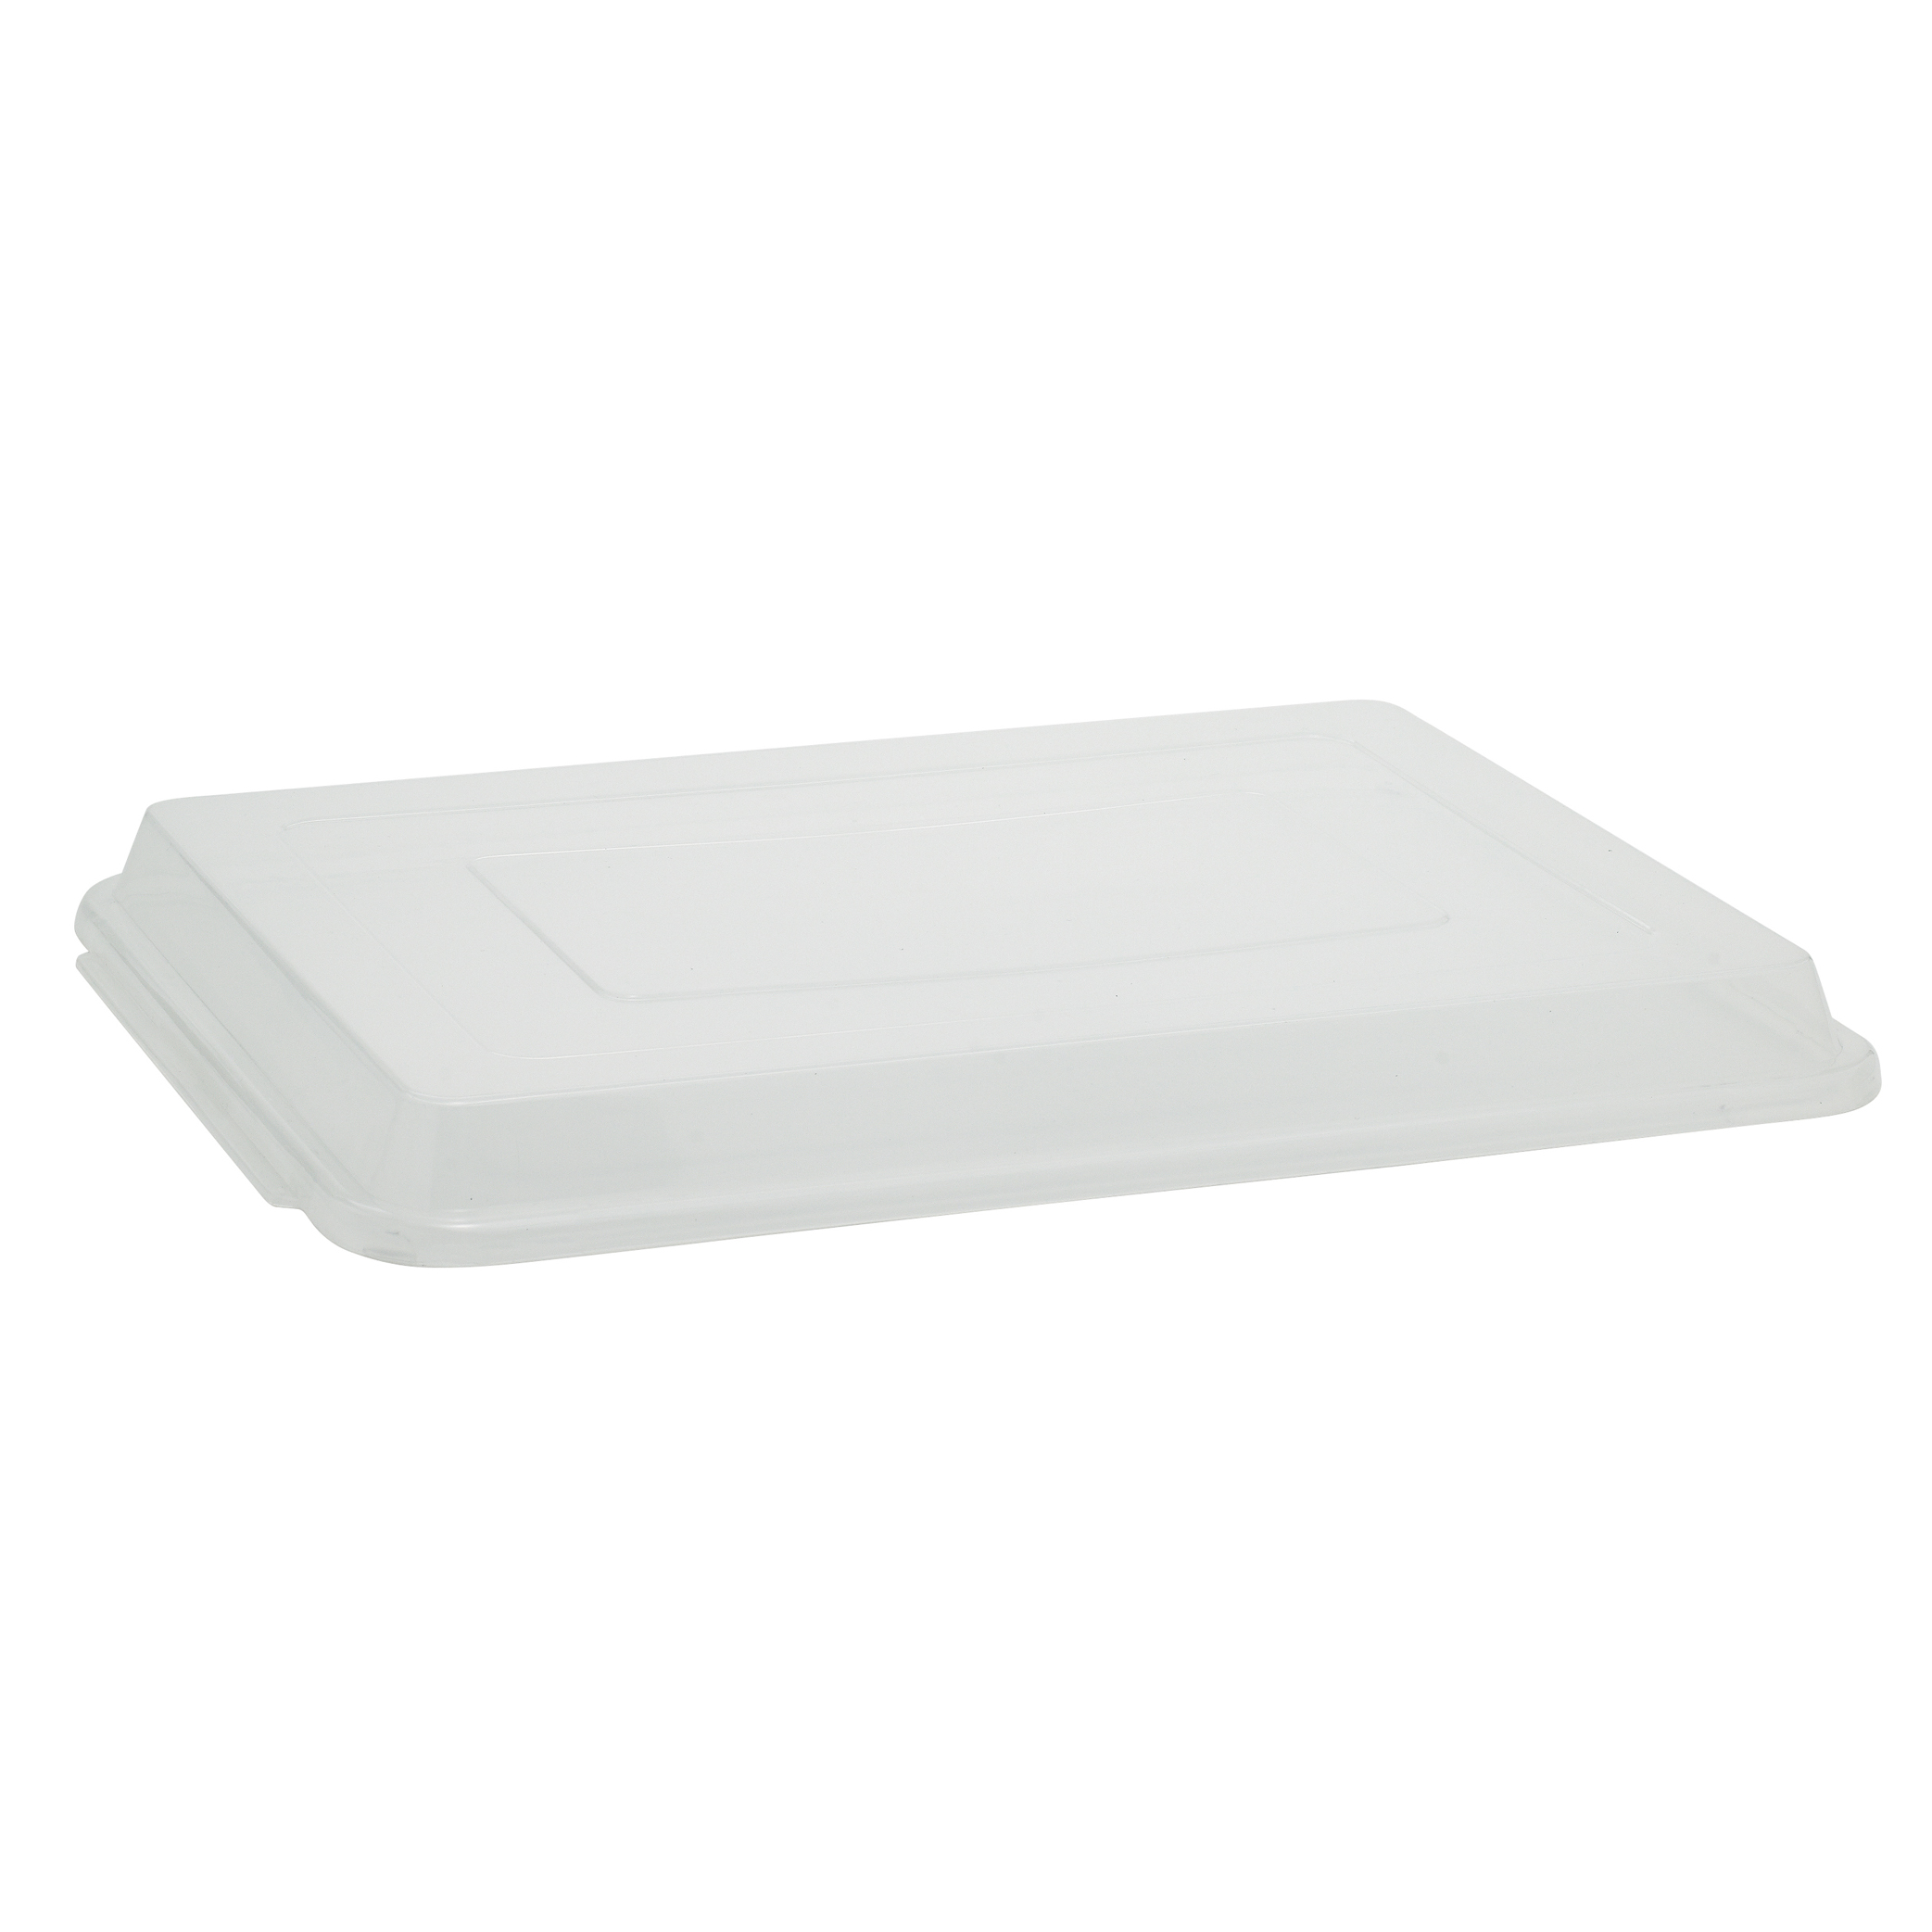 Winco CXP-1013 bun / sheet pan, cover